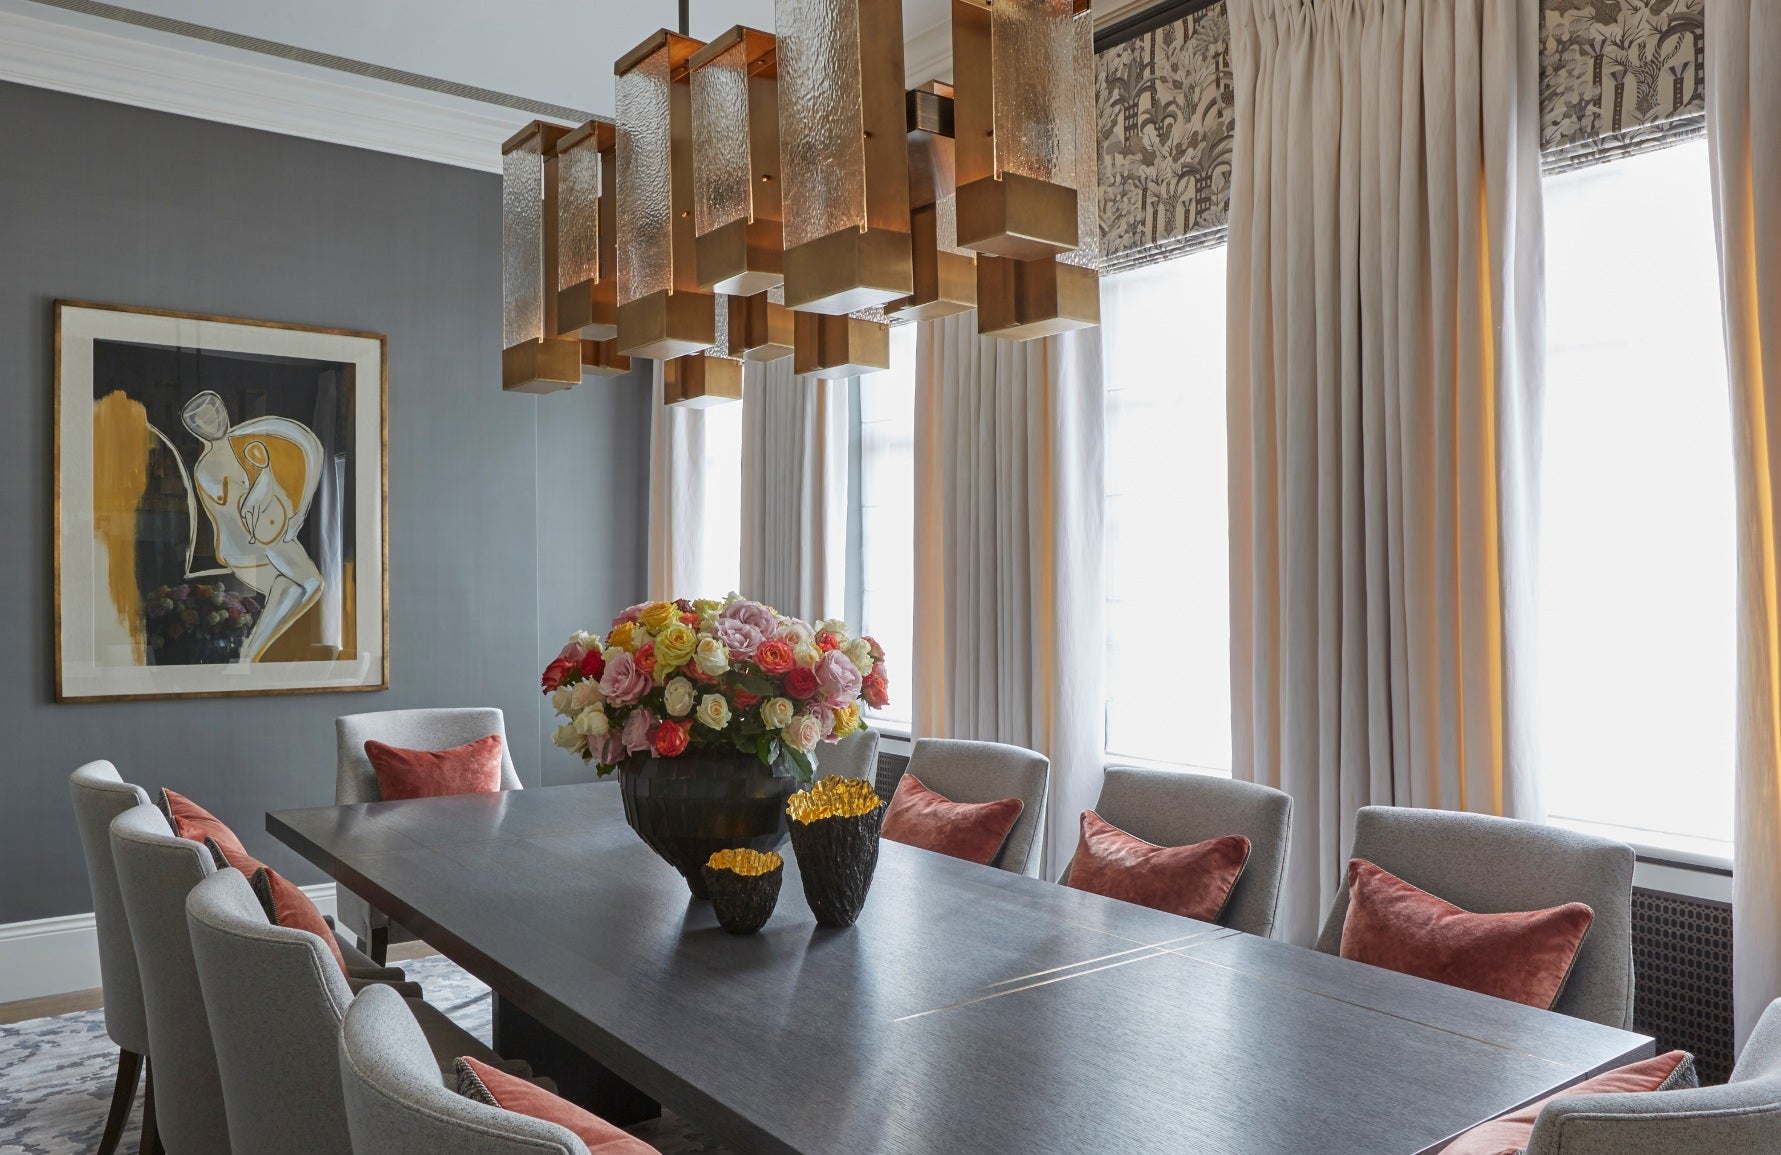 Coral and Grey Dining Room – Dining Room Colour Palettes - Dining Room Colour Schemes & Colour Combination ideas – Read in the LuxDeco.com Style Guide